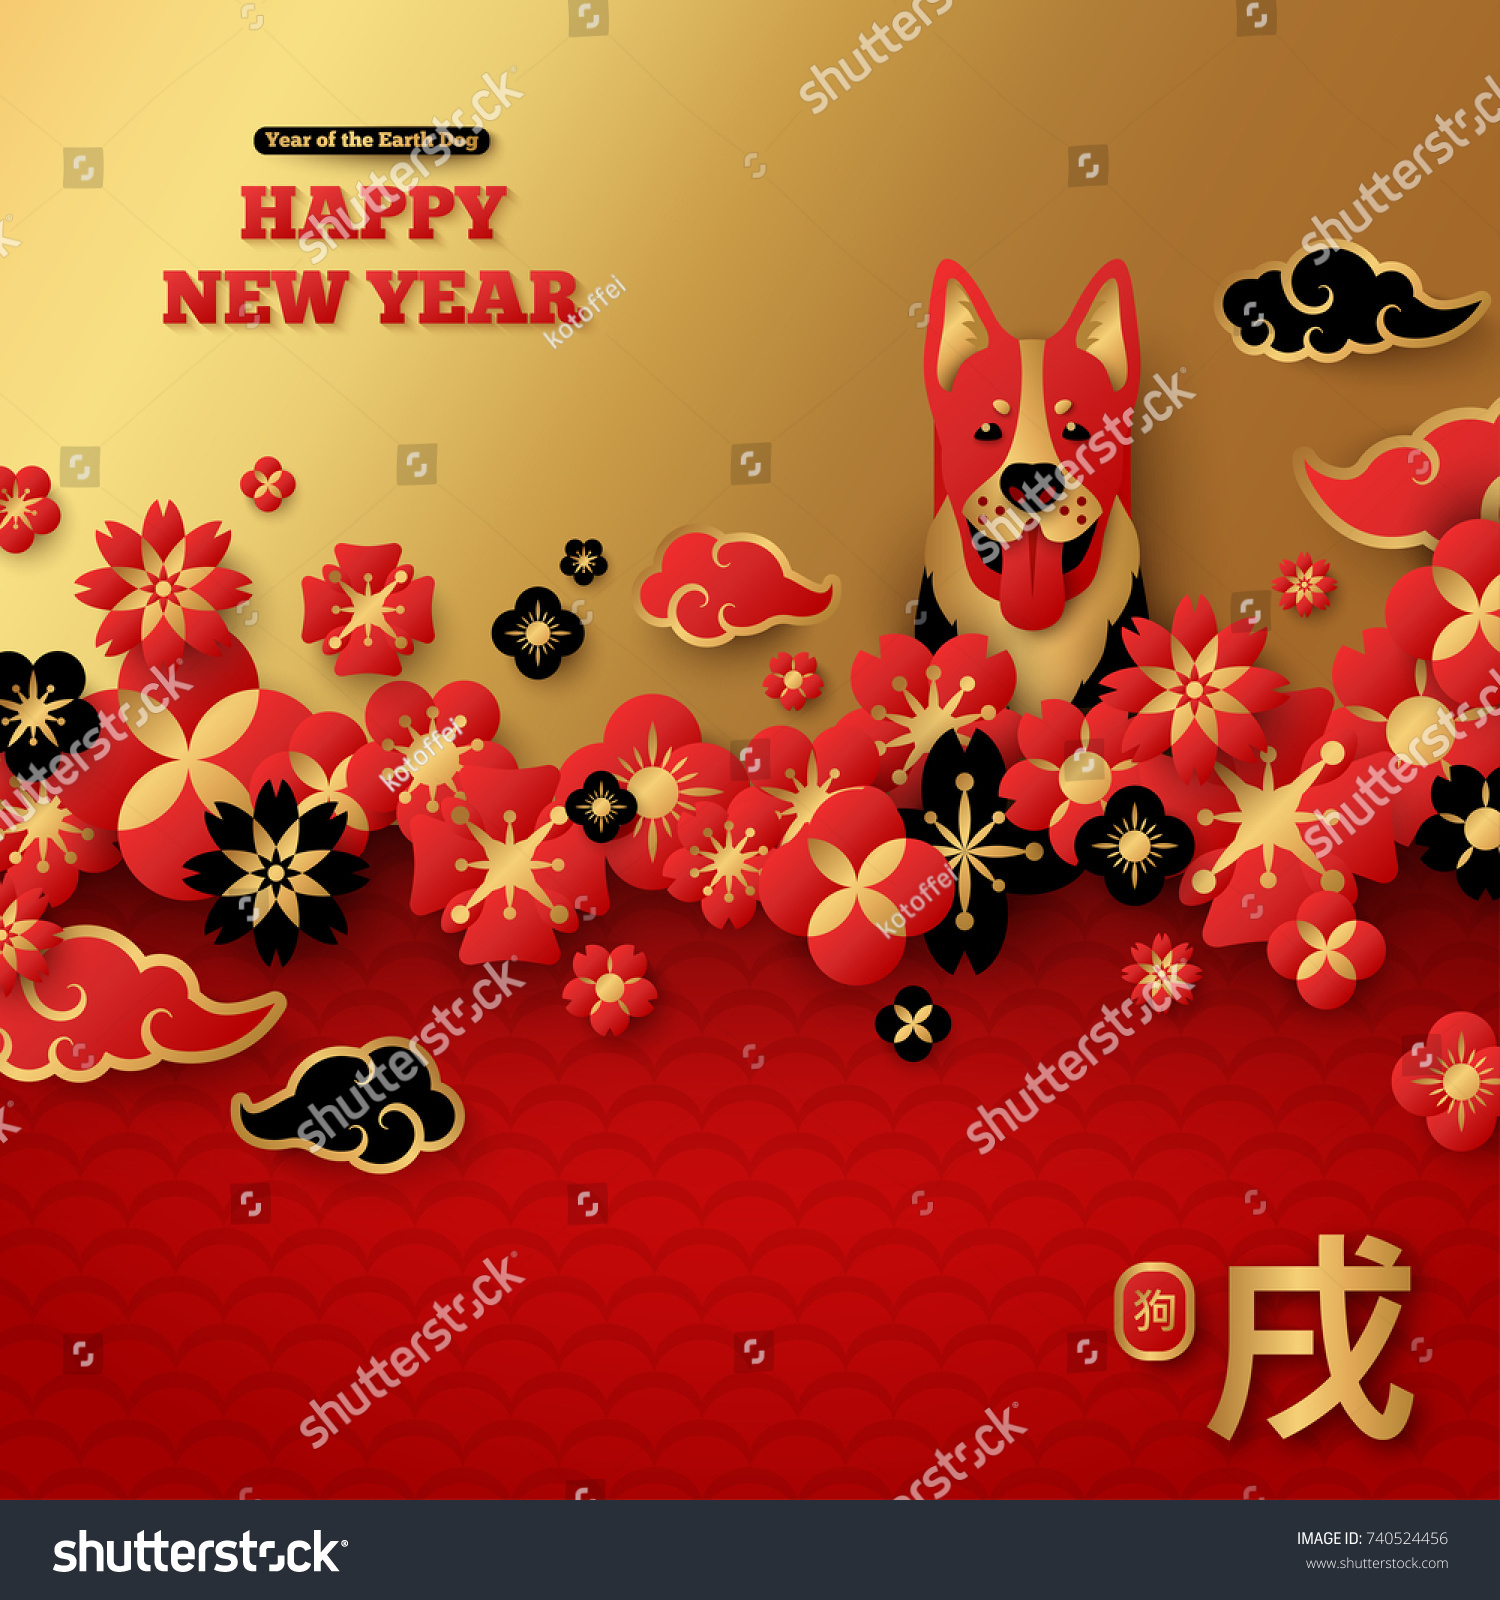 2018 chinese new year greeting card stock vector royalty free 2018 chinese new year greeting card with floral border and puppy head vector illustration m4hsunfo